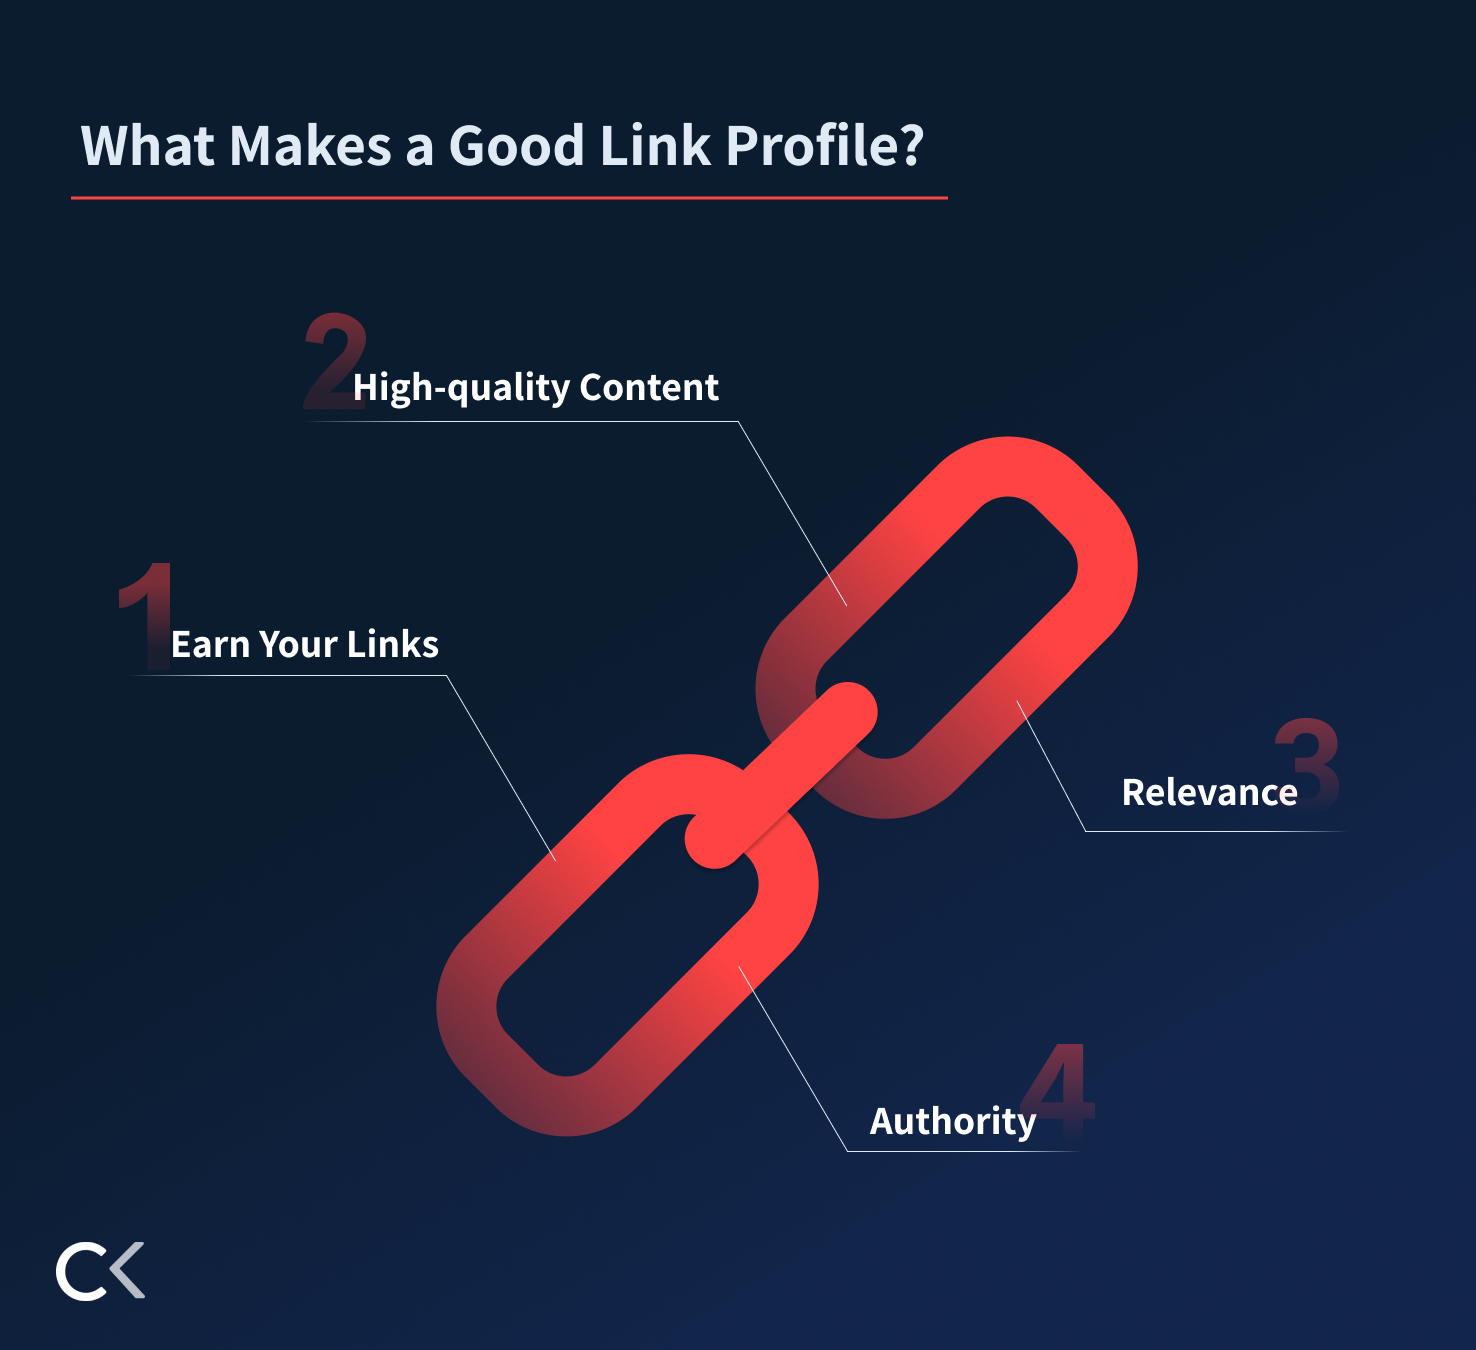 What makes a good link profile? Earn your links, High-quality Content, Relevance & Authority.